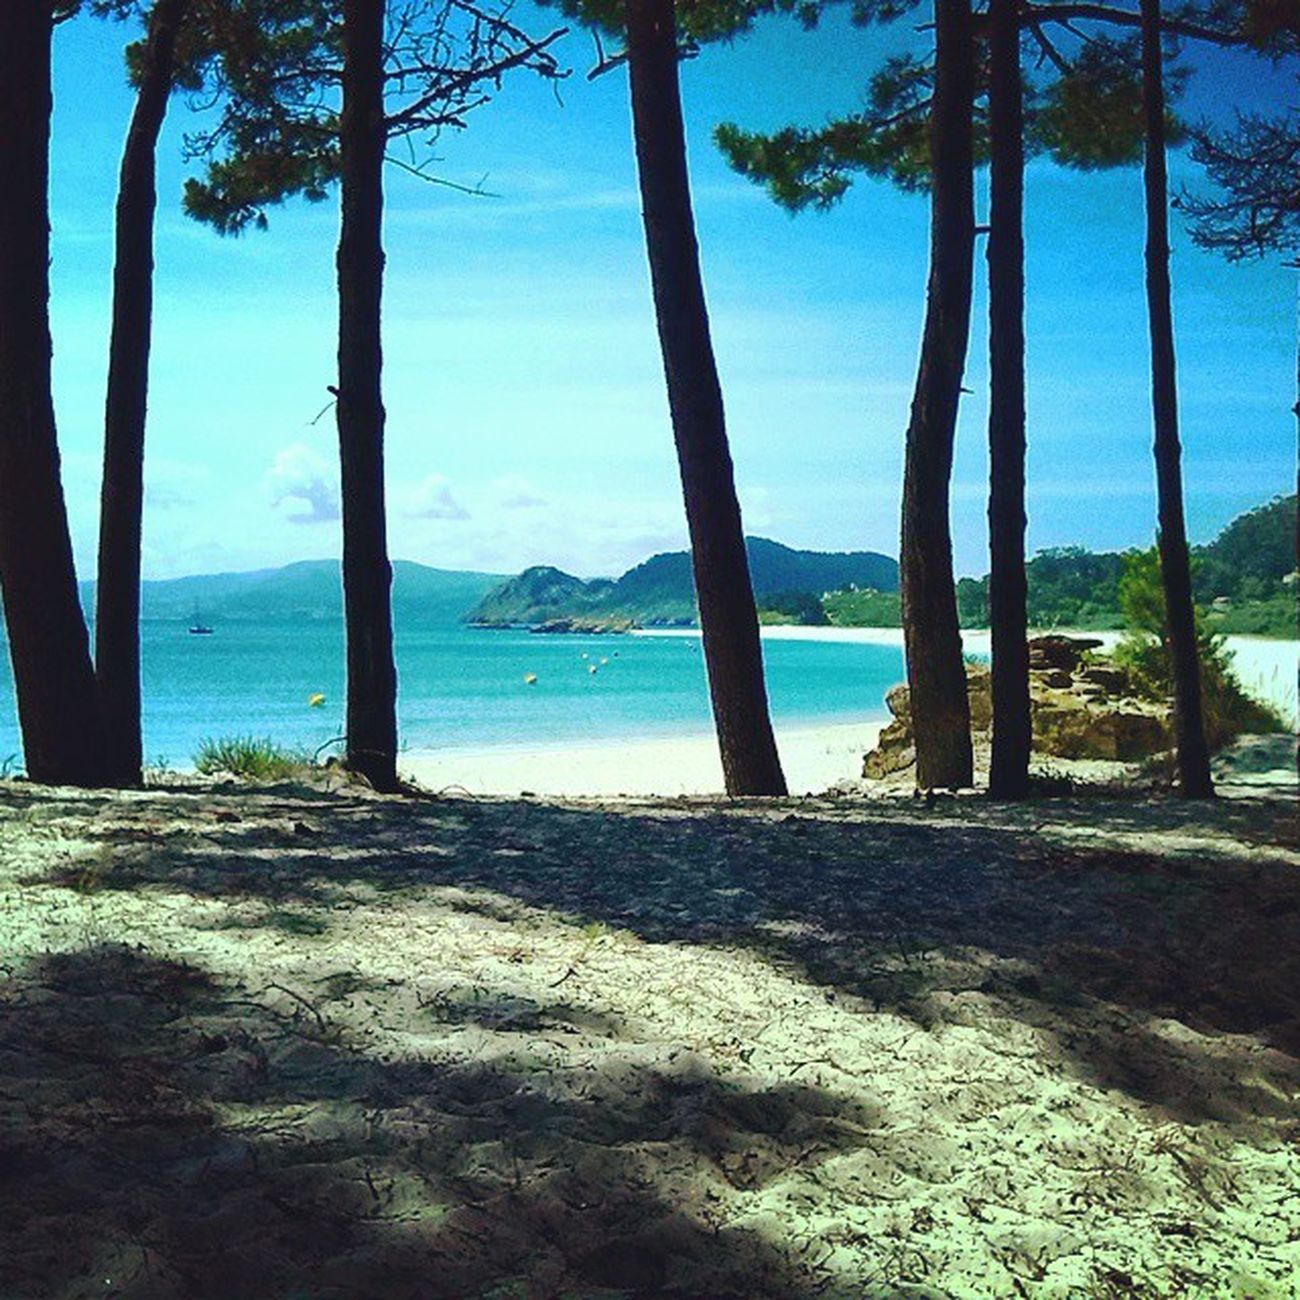 Working Lastsummer Bestplace Nabia Ciesislands Galifornia Riasbaixas Galicia SPAIN Zen Sea Blue Relax Beautifulplace Bestbeachintheworld Cangas Vigo Goodlife WestCoast